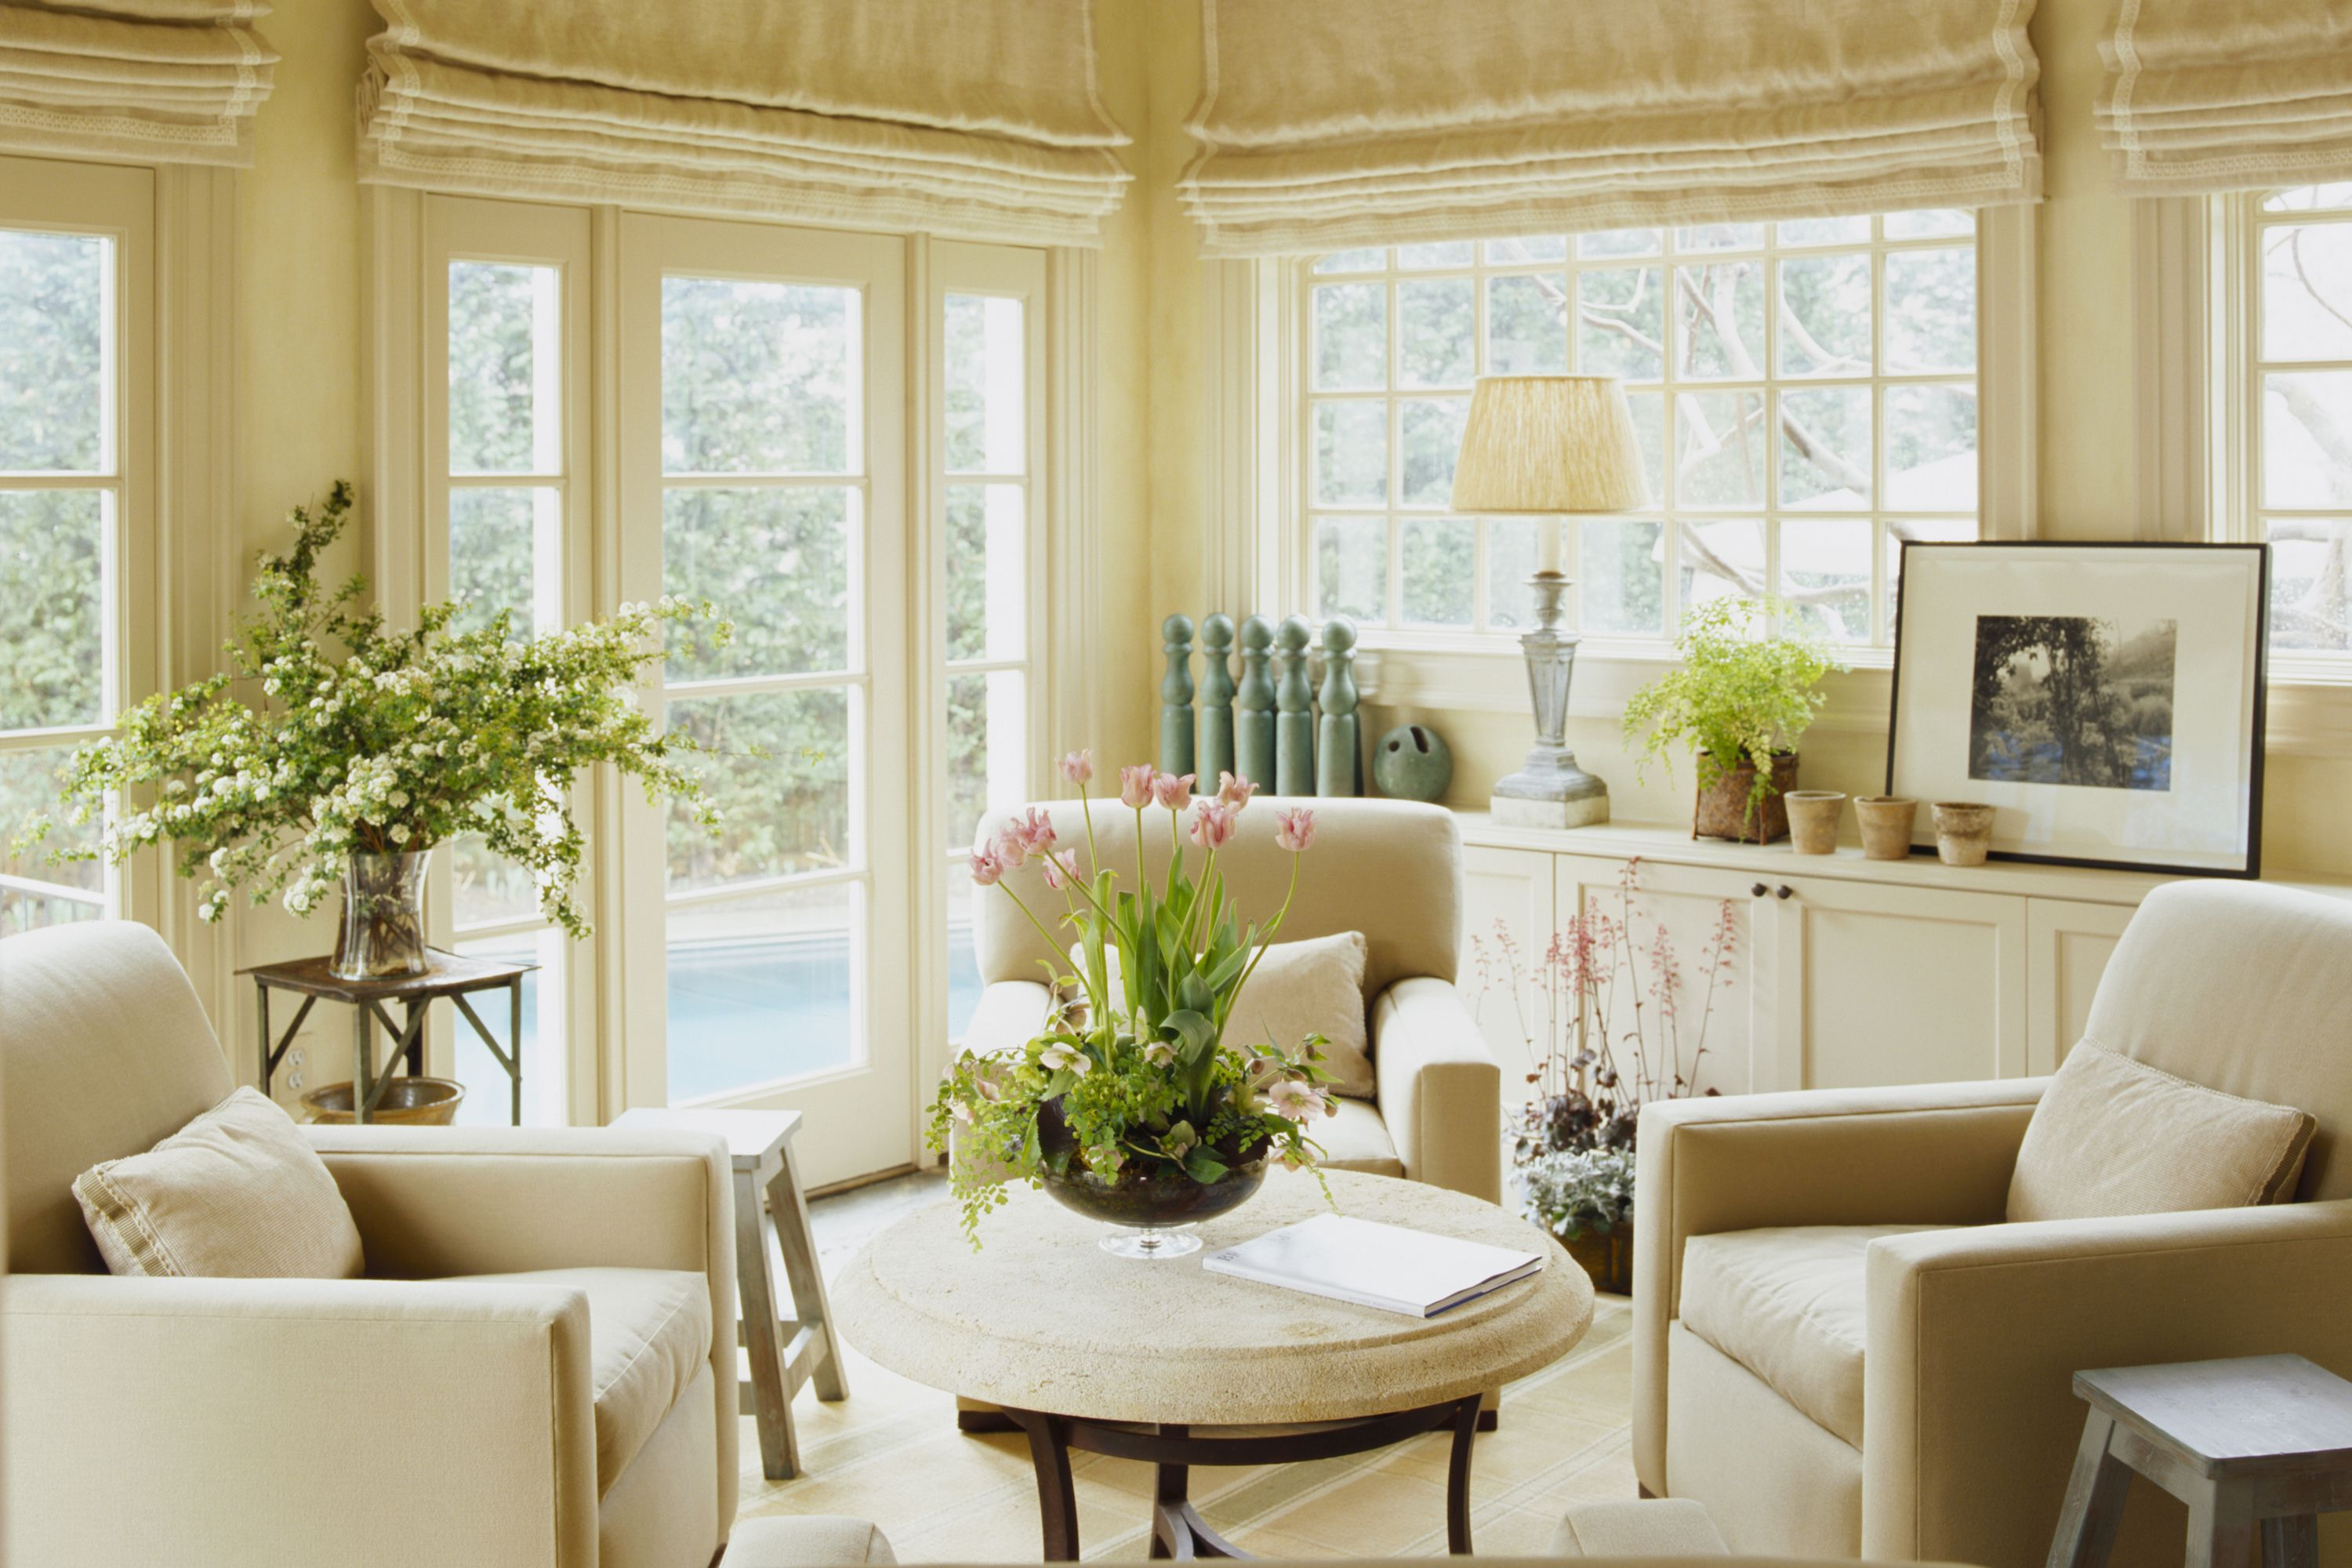 treat pictures coverings decor sunroom excellent decorating window ideas treatments stunning diy ceiling wind